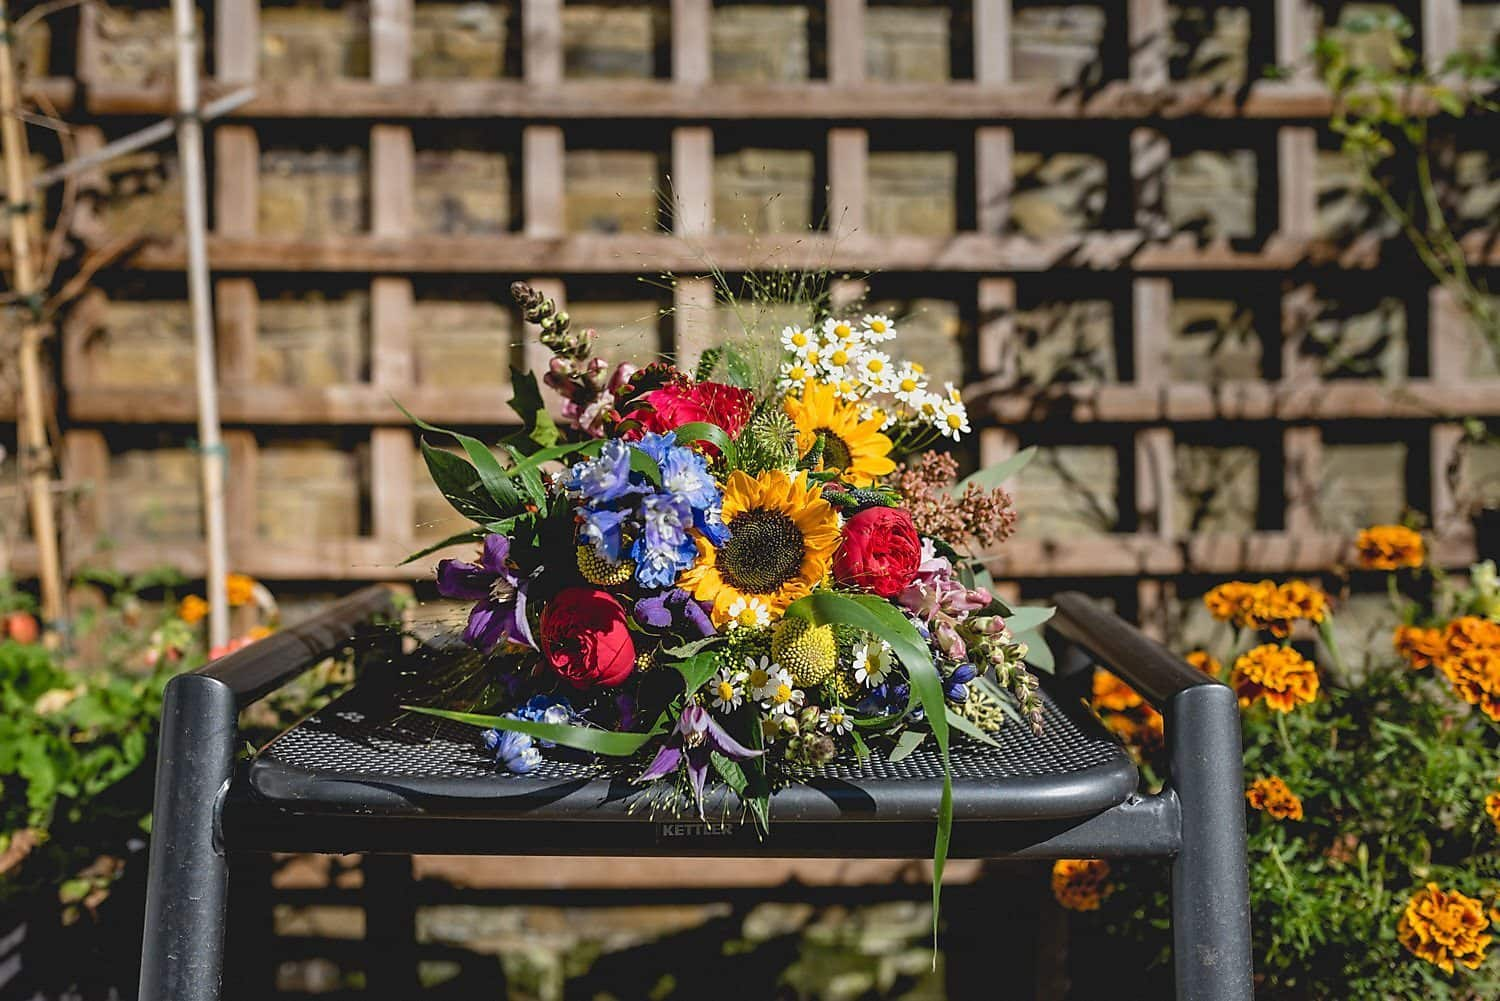 Close up of colourful bridal bouquet featuring daisies, roses and sunflowers